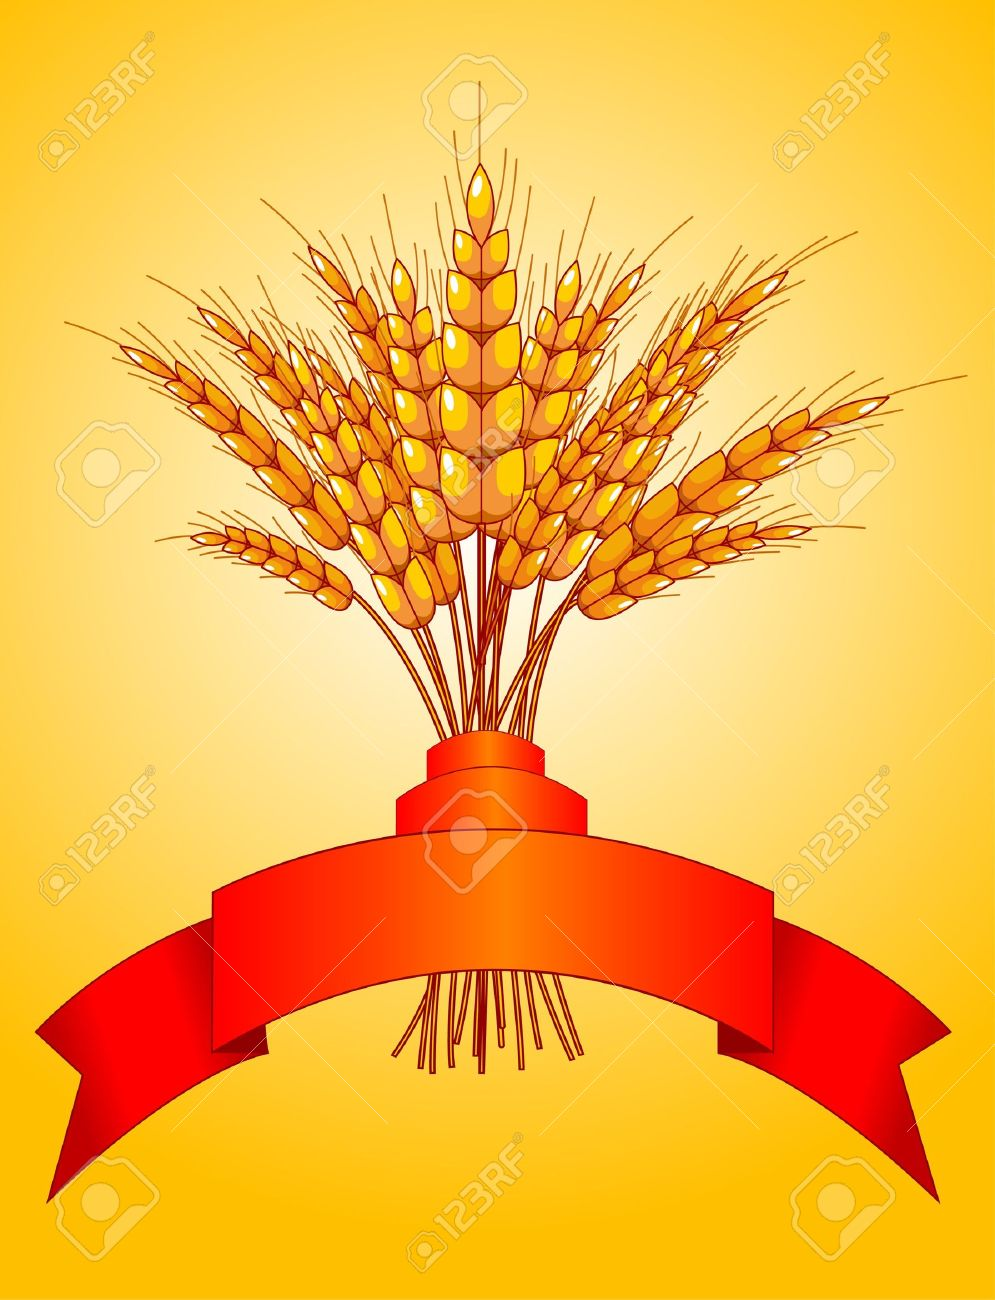 Illustration desing of ears of wheat on yellow background Stock Vector - 7645376